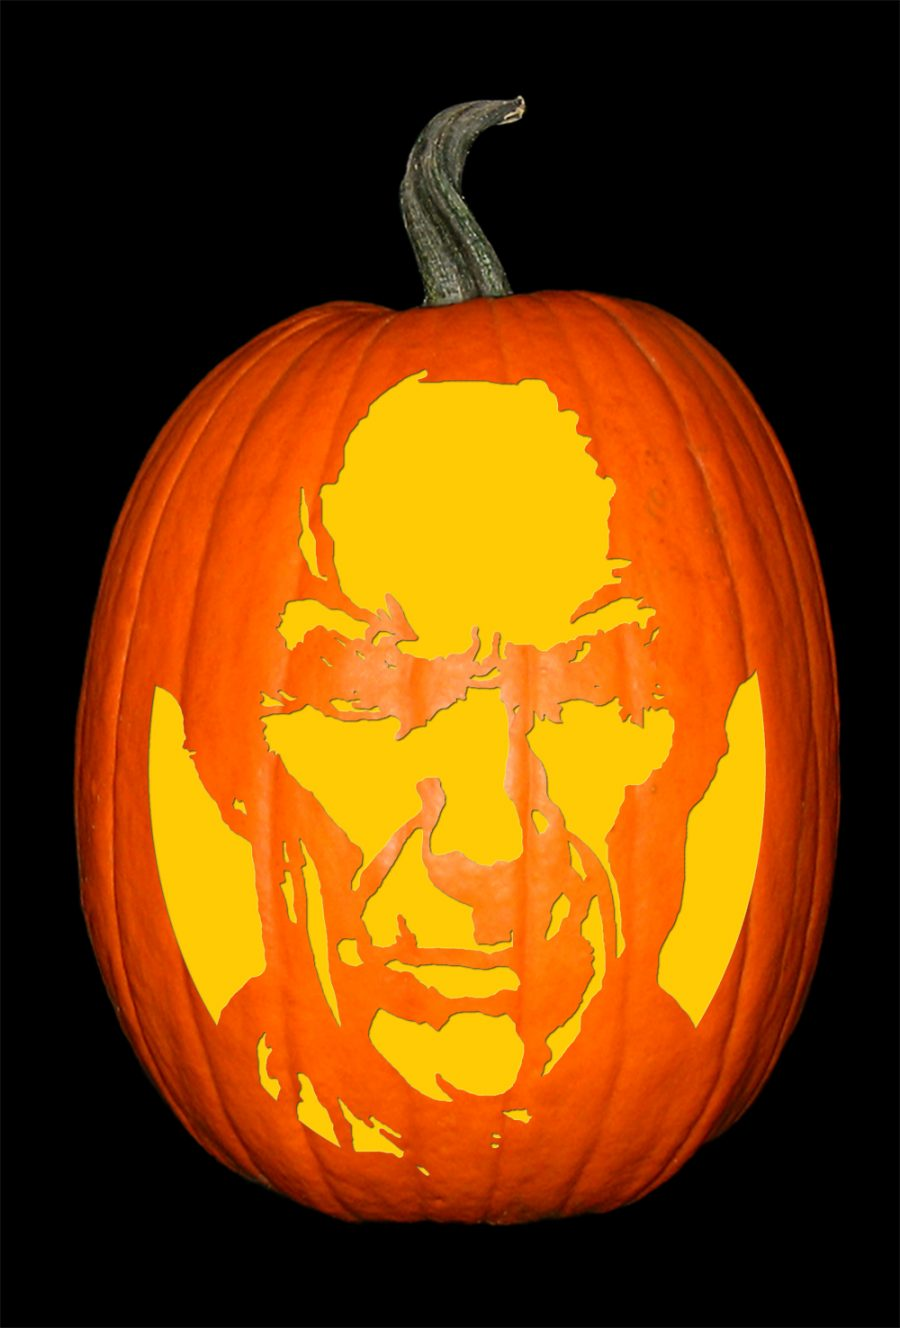 Clint Eastwood Pumpkin